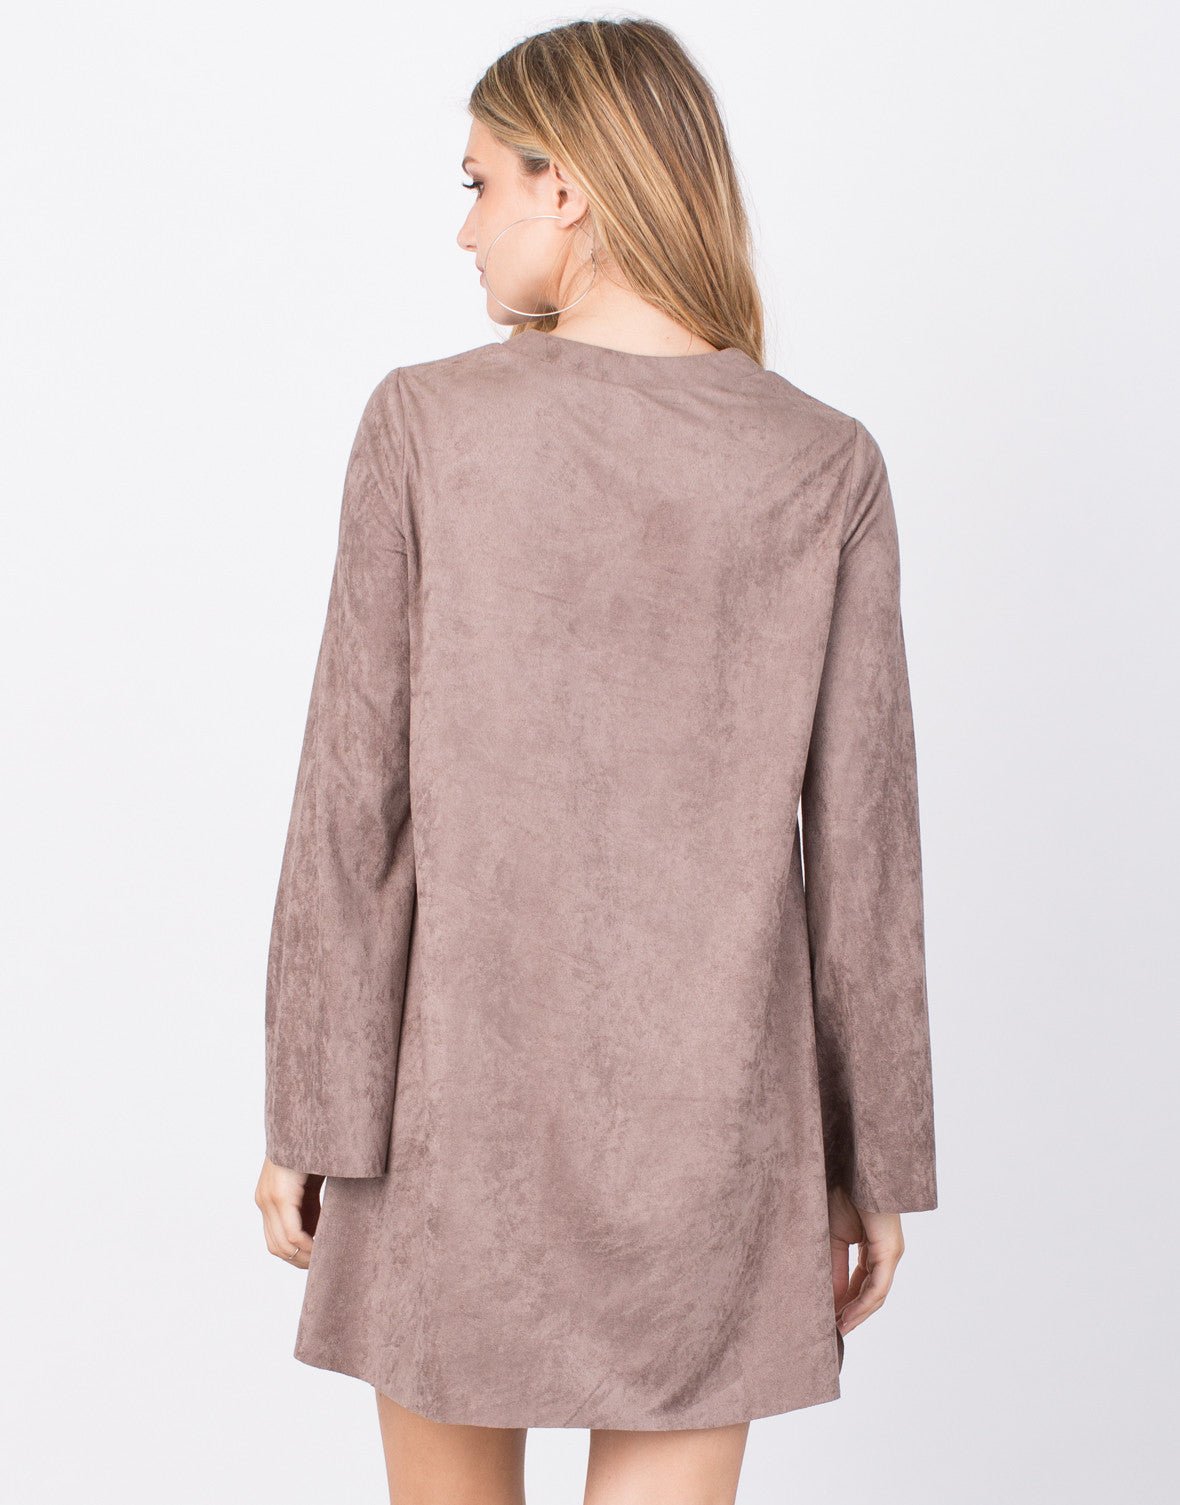 Back View of Tied Up Suede Dress